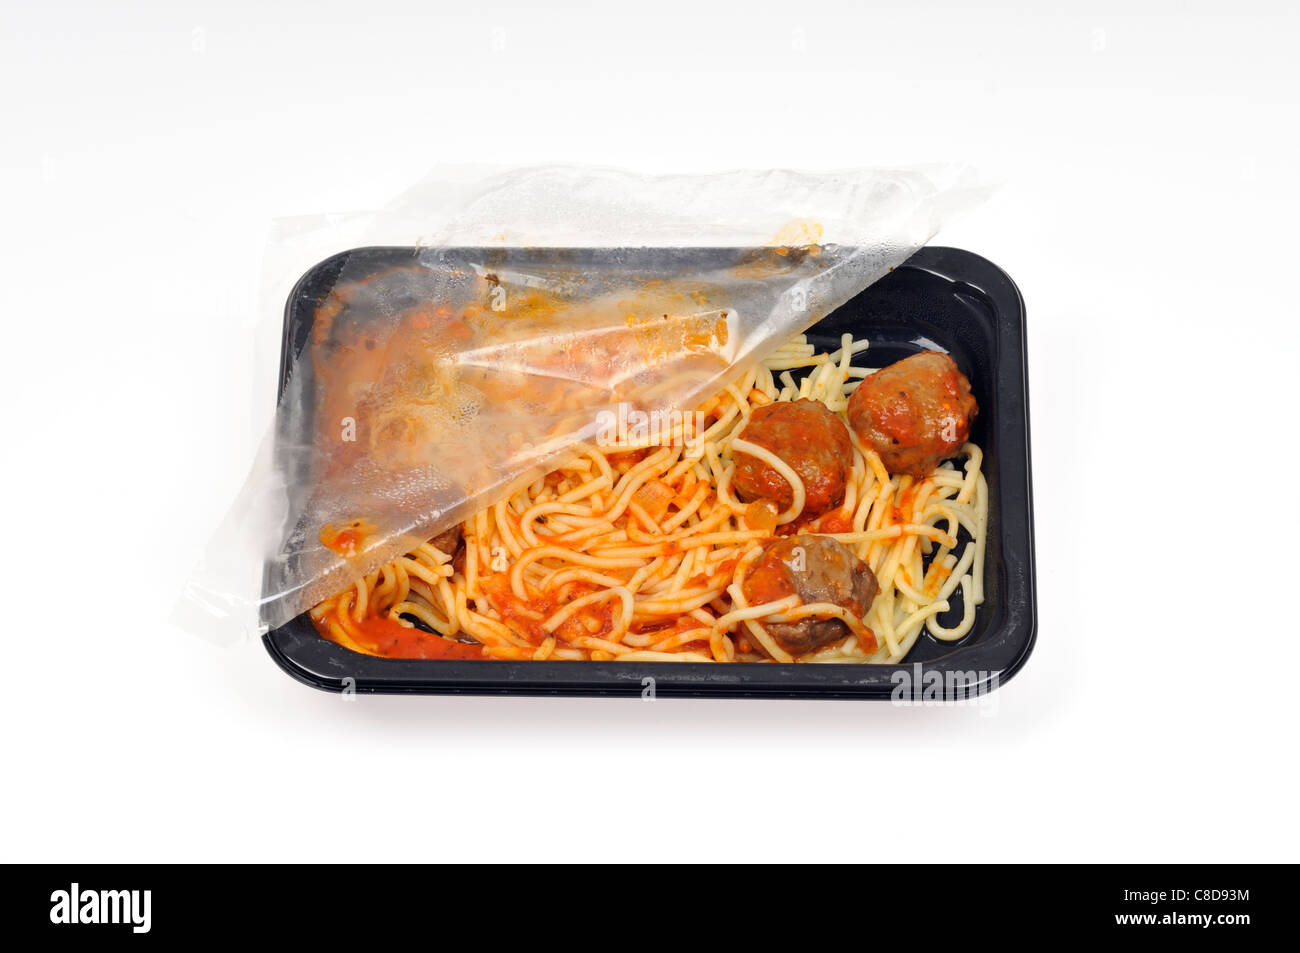 Tray of microwave spaghetti and meatballs with plastic cover still on & pulled open fresh out of cooking in - Stock Image